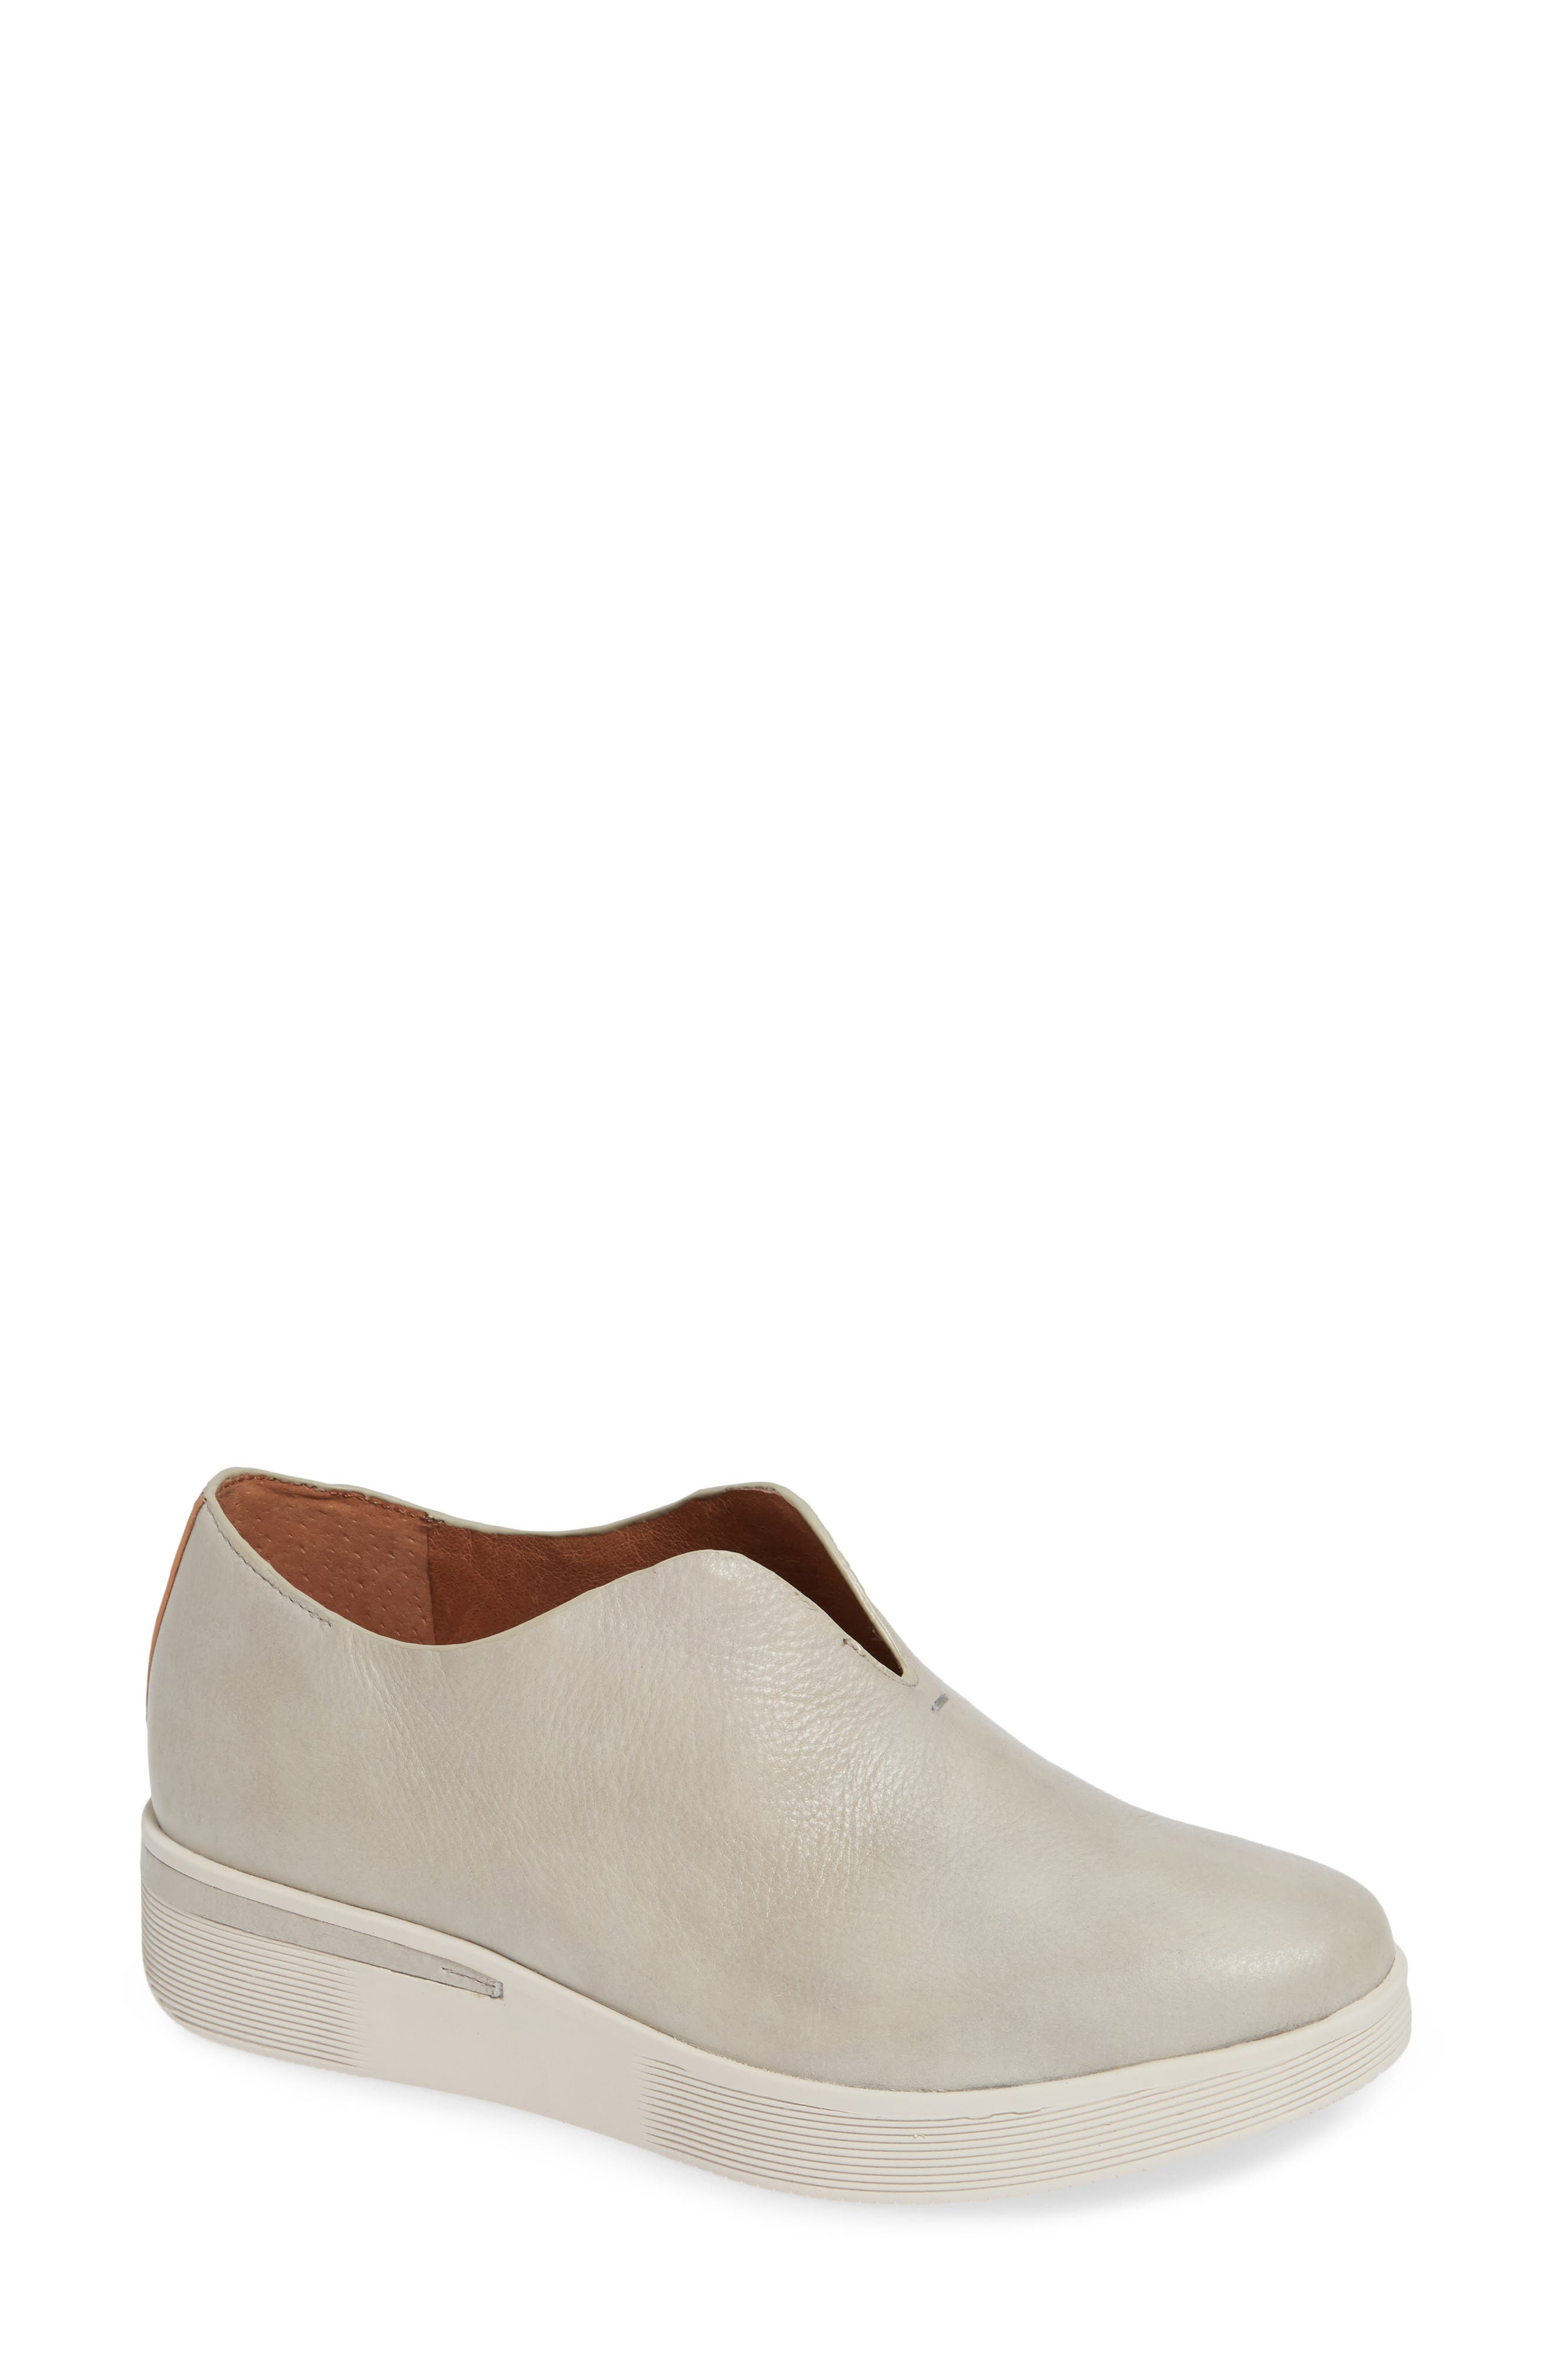 GENTLE SOULS BY KENNETH COLE Hanna Slip-On Sneaker, Main, color, LIGHT GREY LEATHER